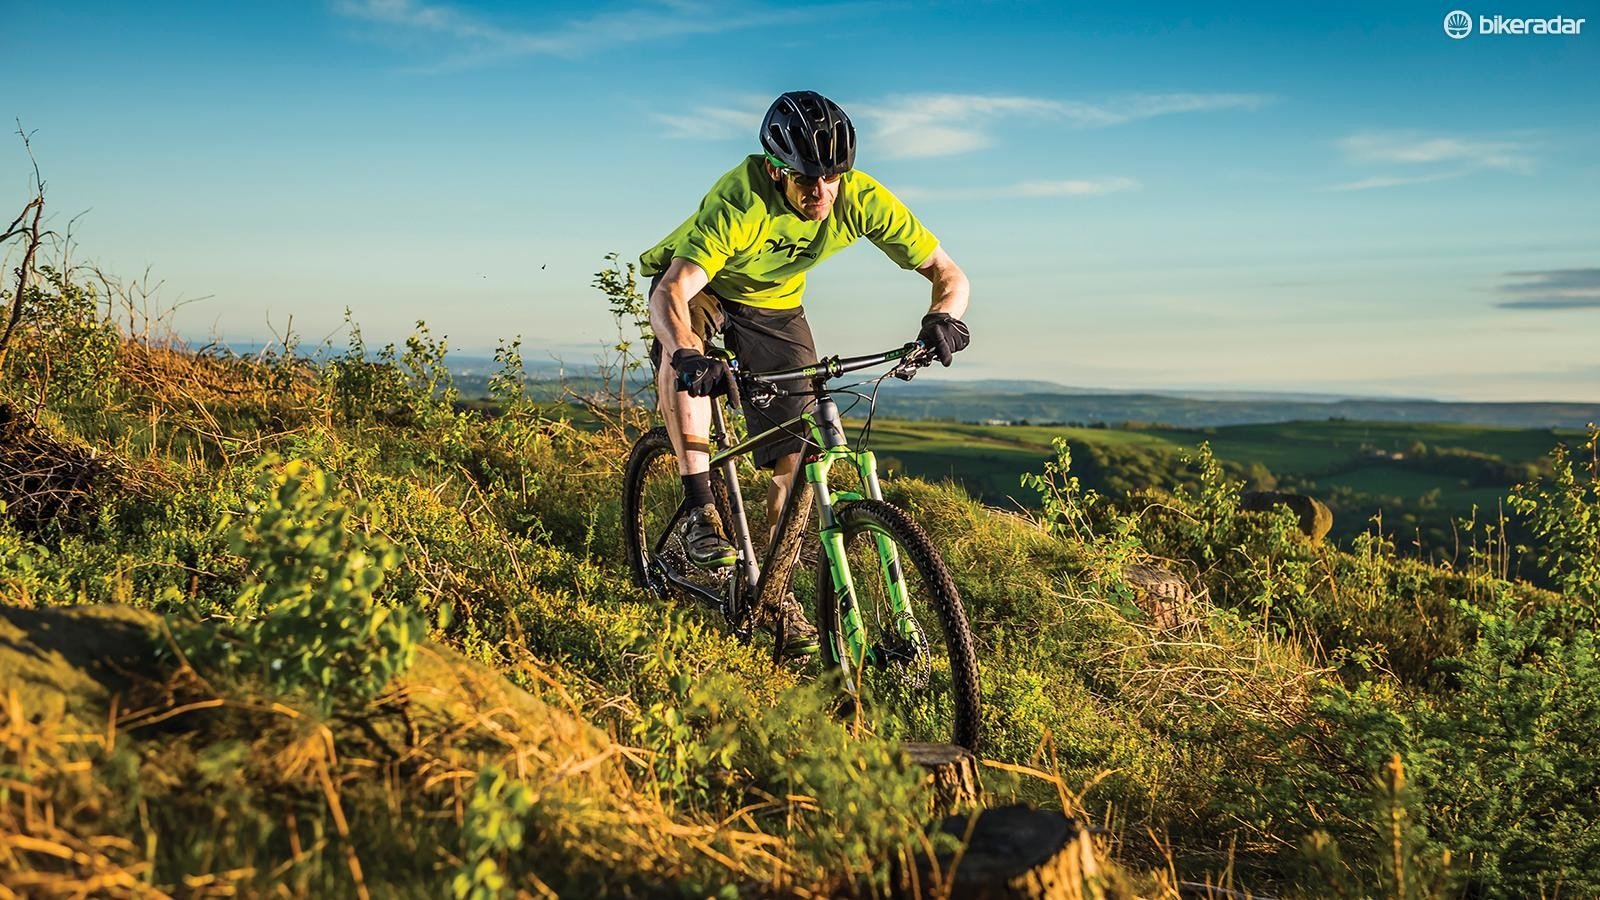 The Reaction GTC frame could definitely build a really fun, dynamic and quick bike…